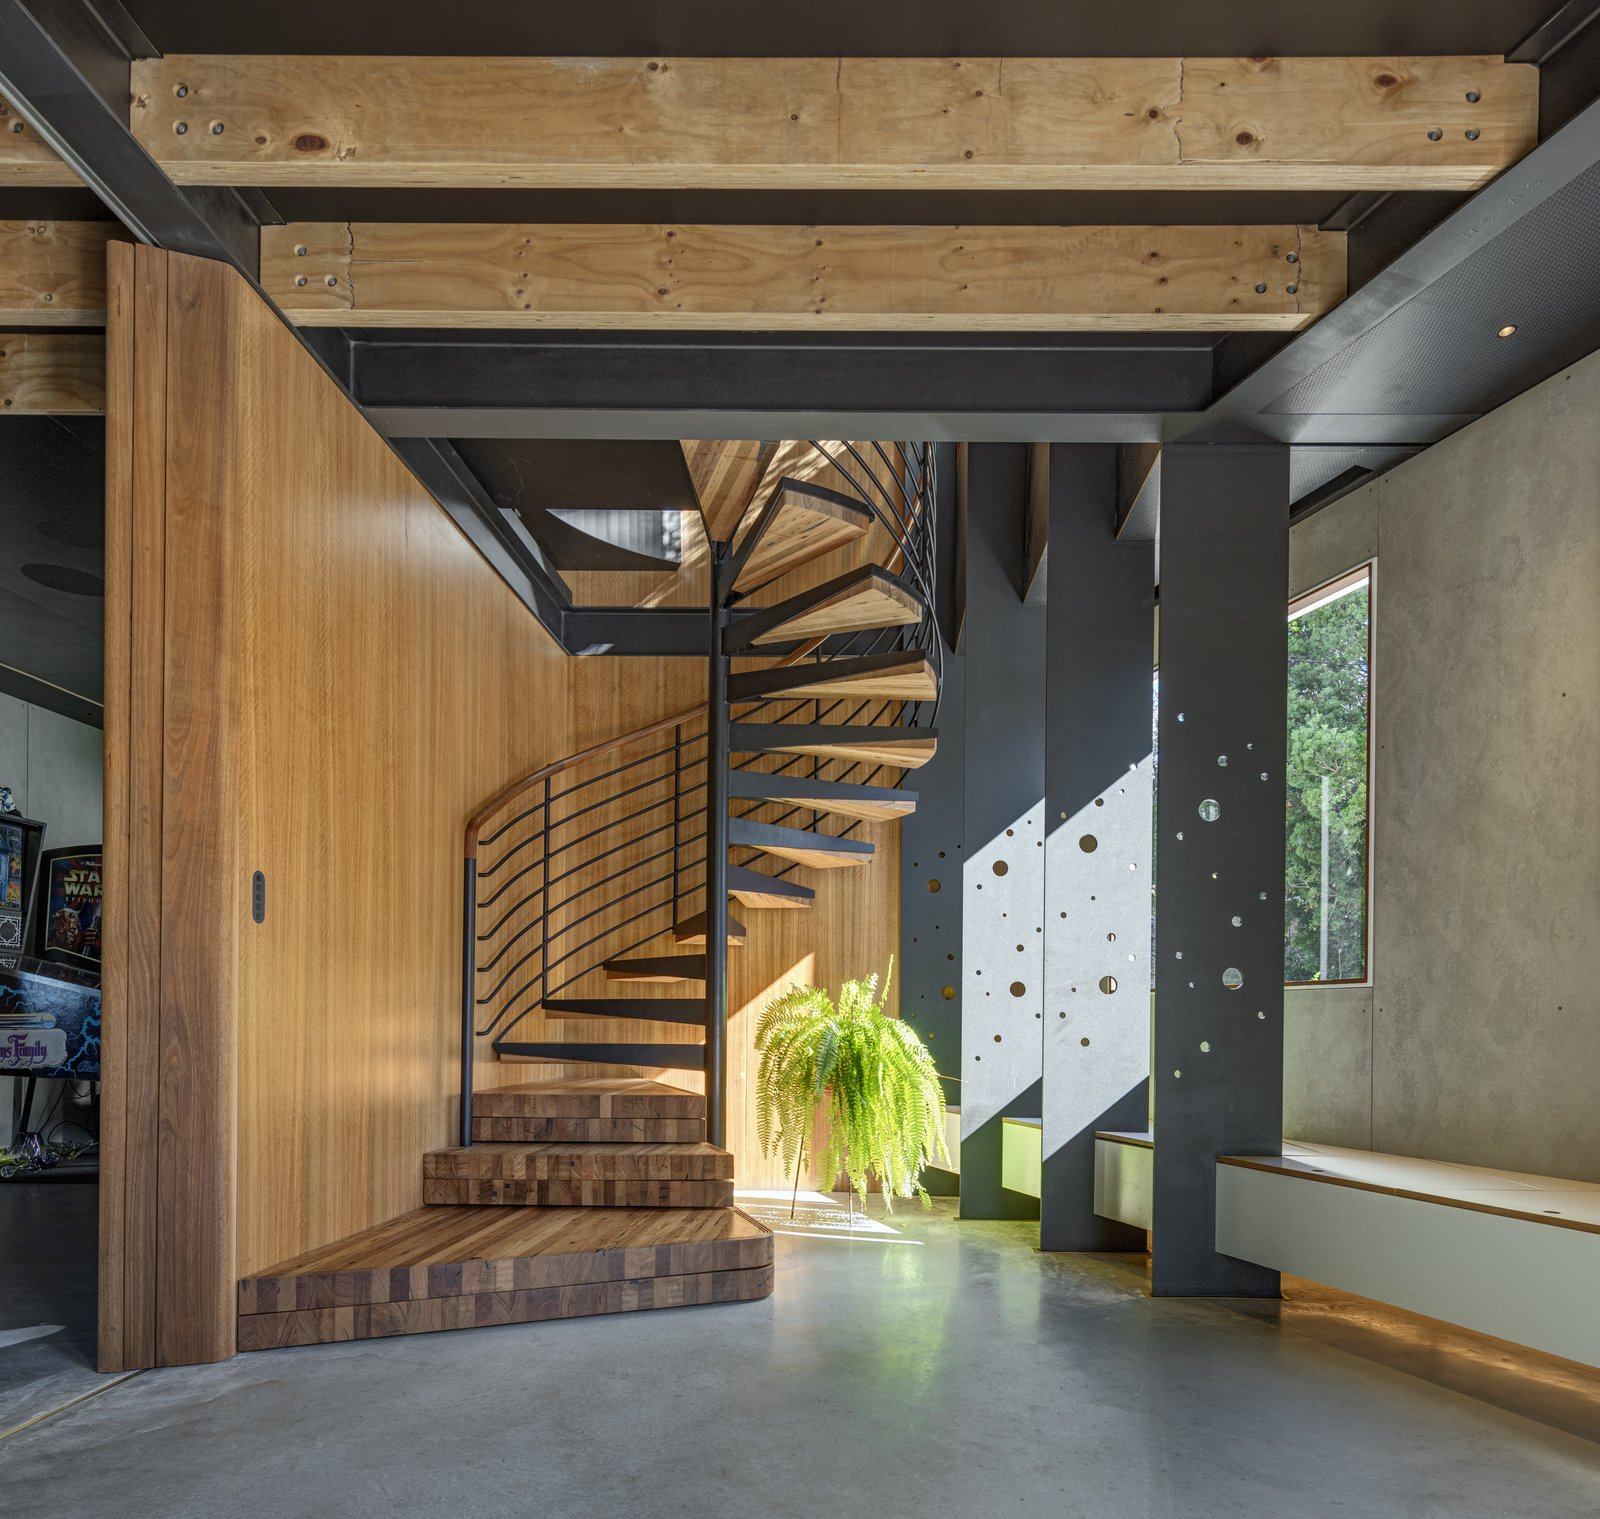 Welcome to the Jungle House timber-clad stairwell